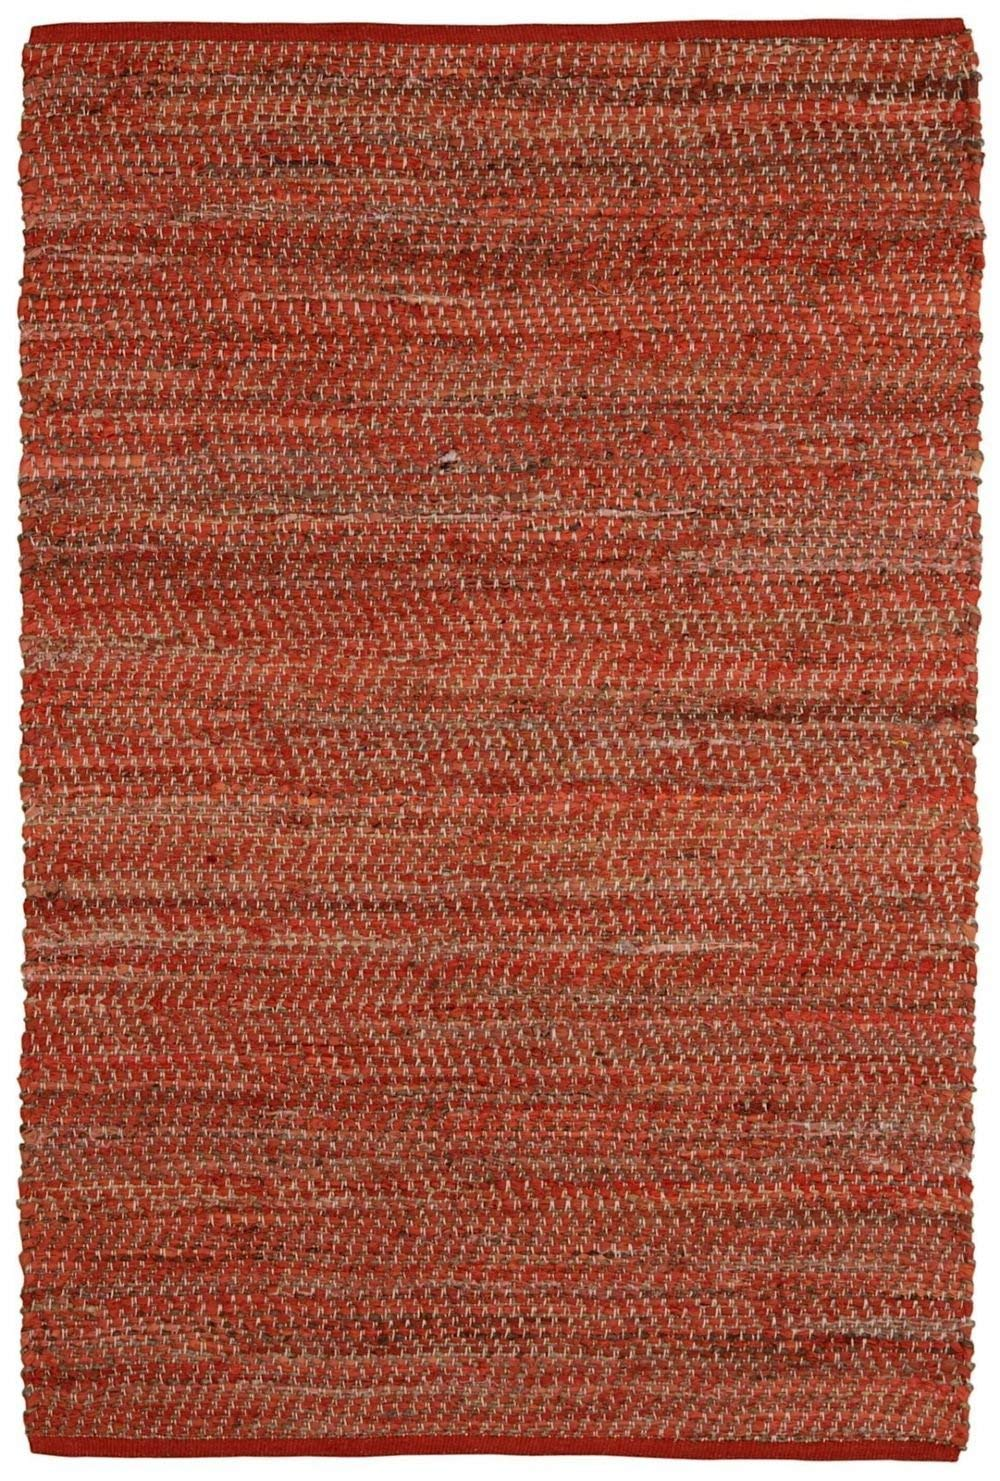 Earth First Jeans Rug, 5-Feet by 8-Feet, Orange